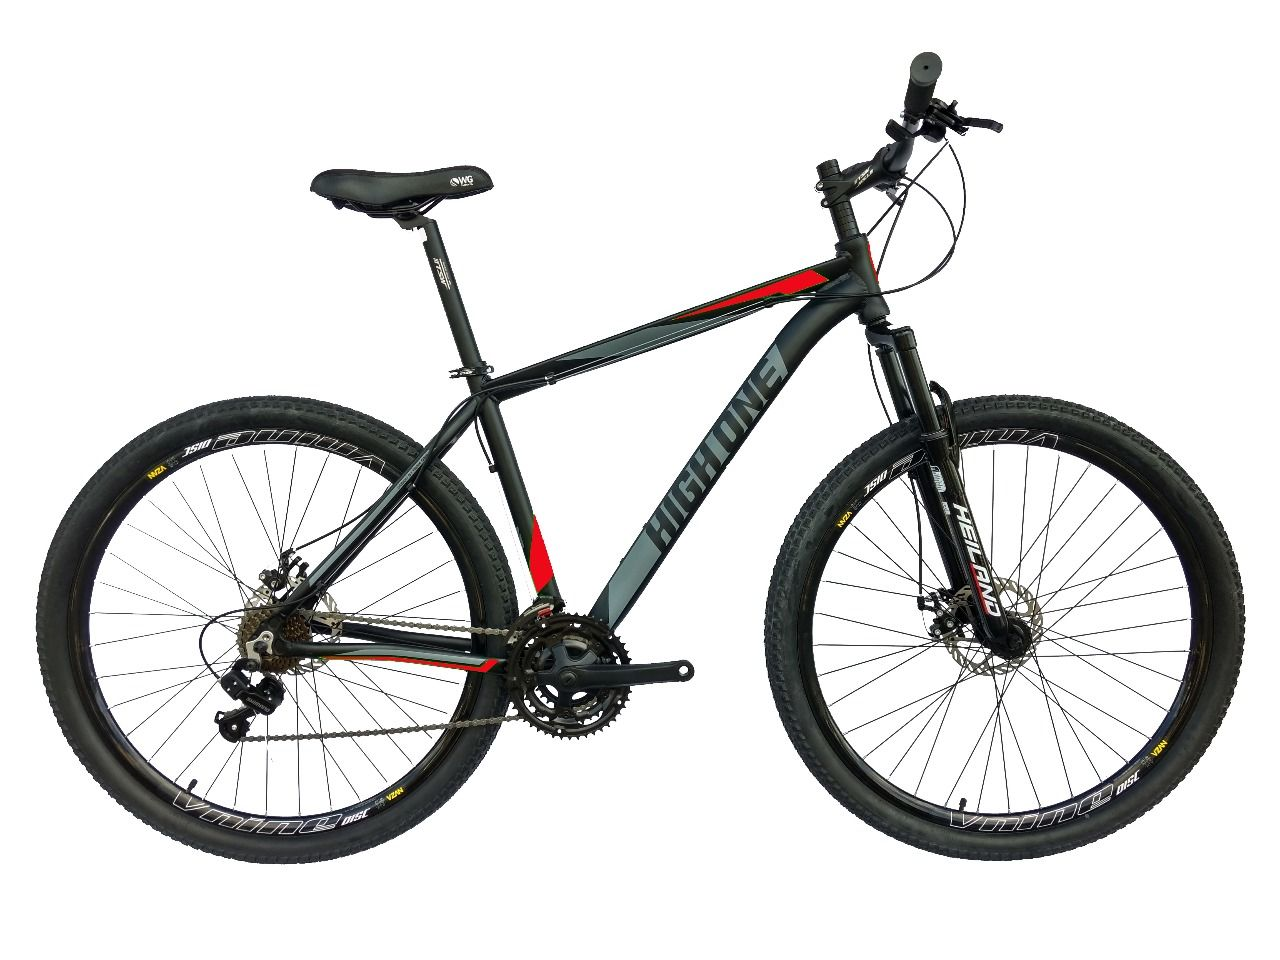 Bicicleta 29 New Strong High One 21V Cambios Shimano Freio a Disco Mecânico